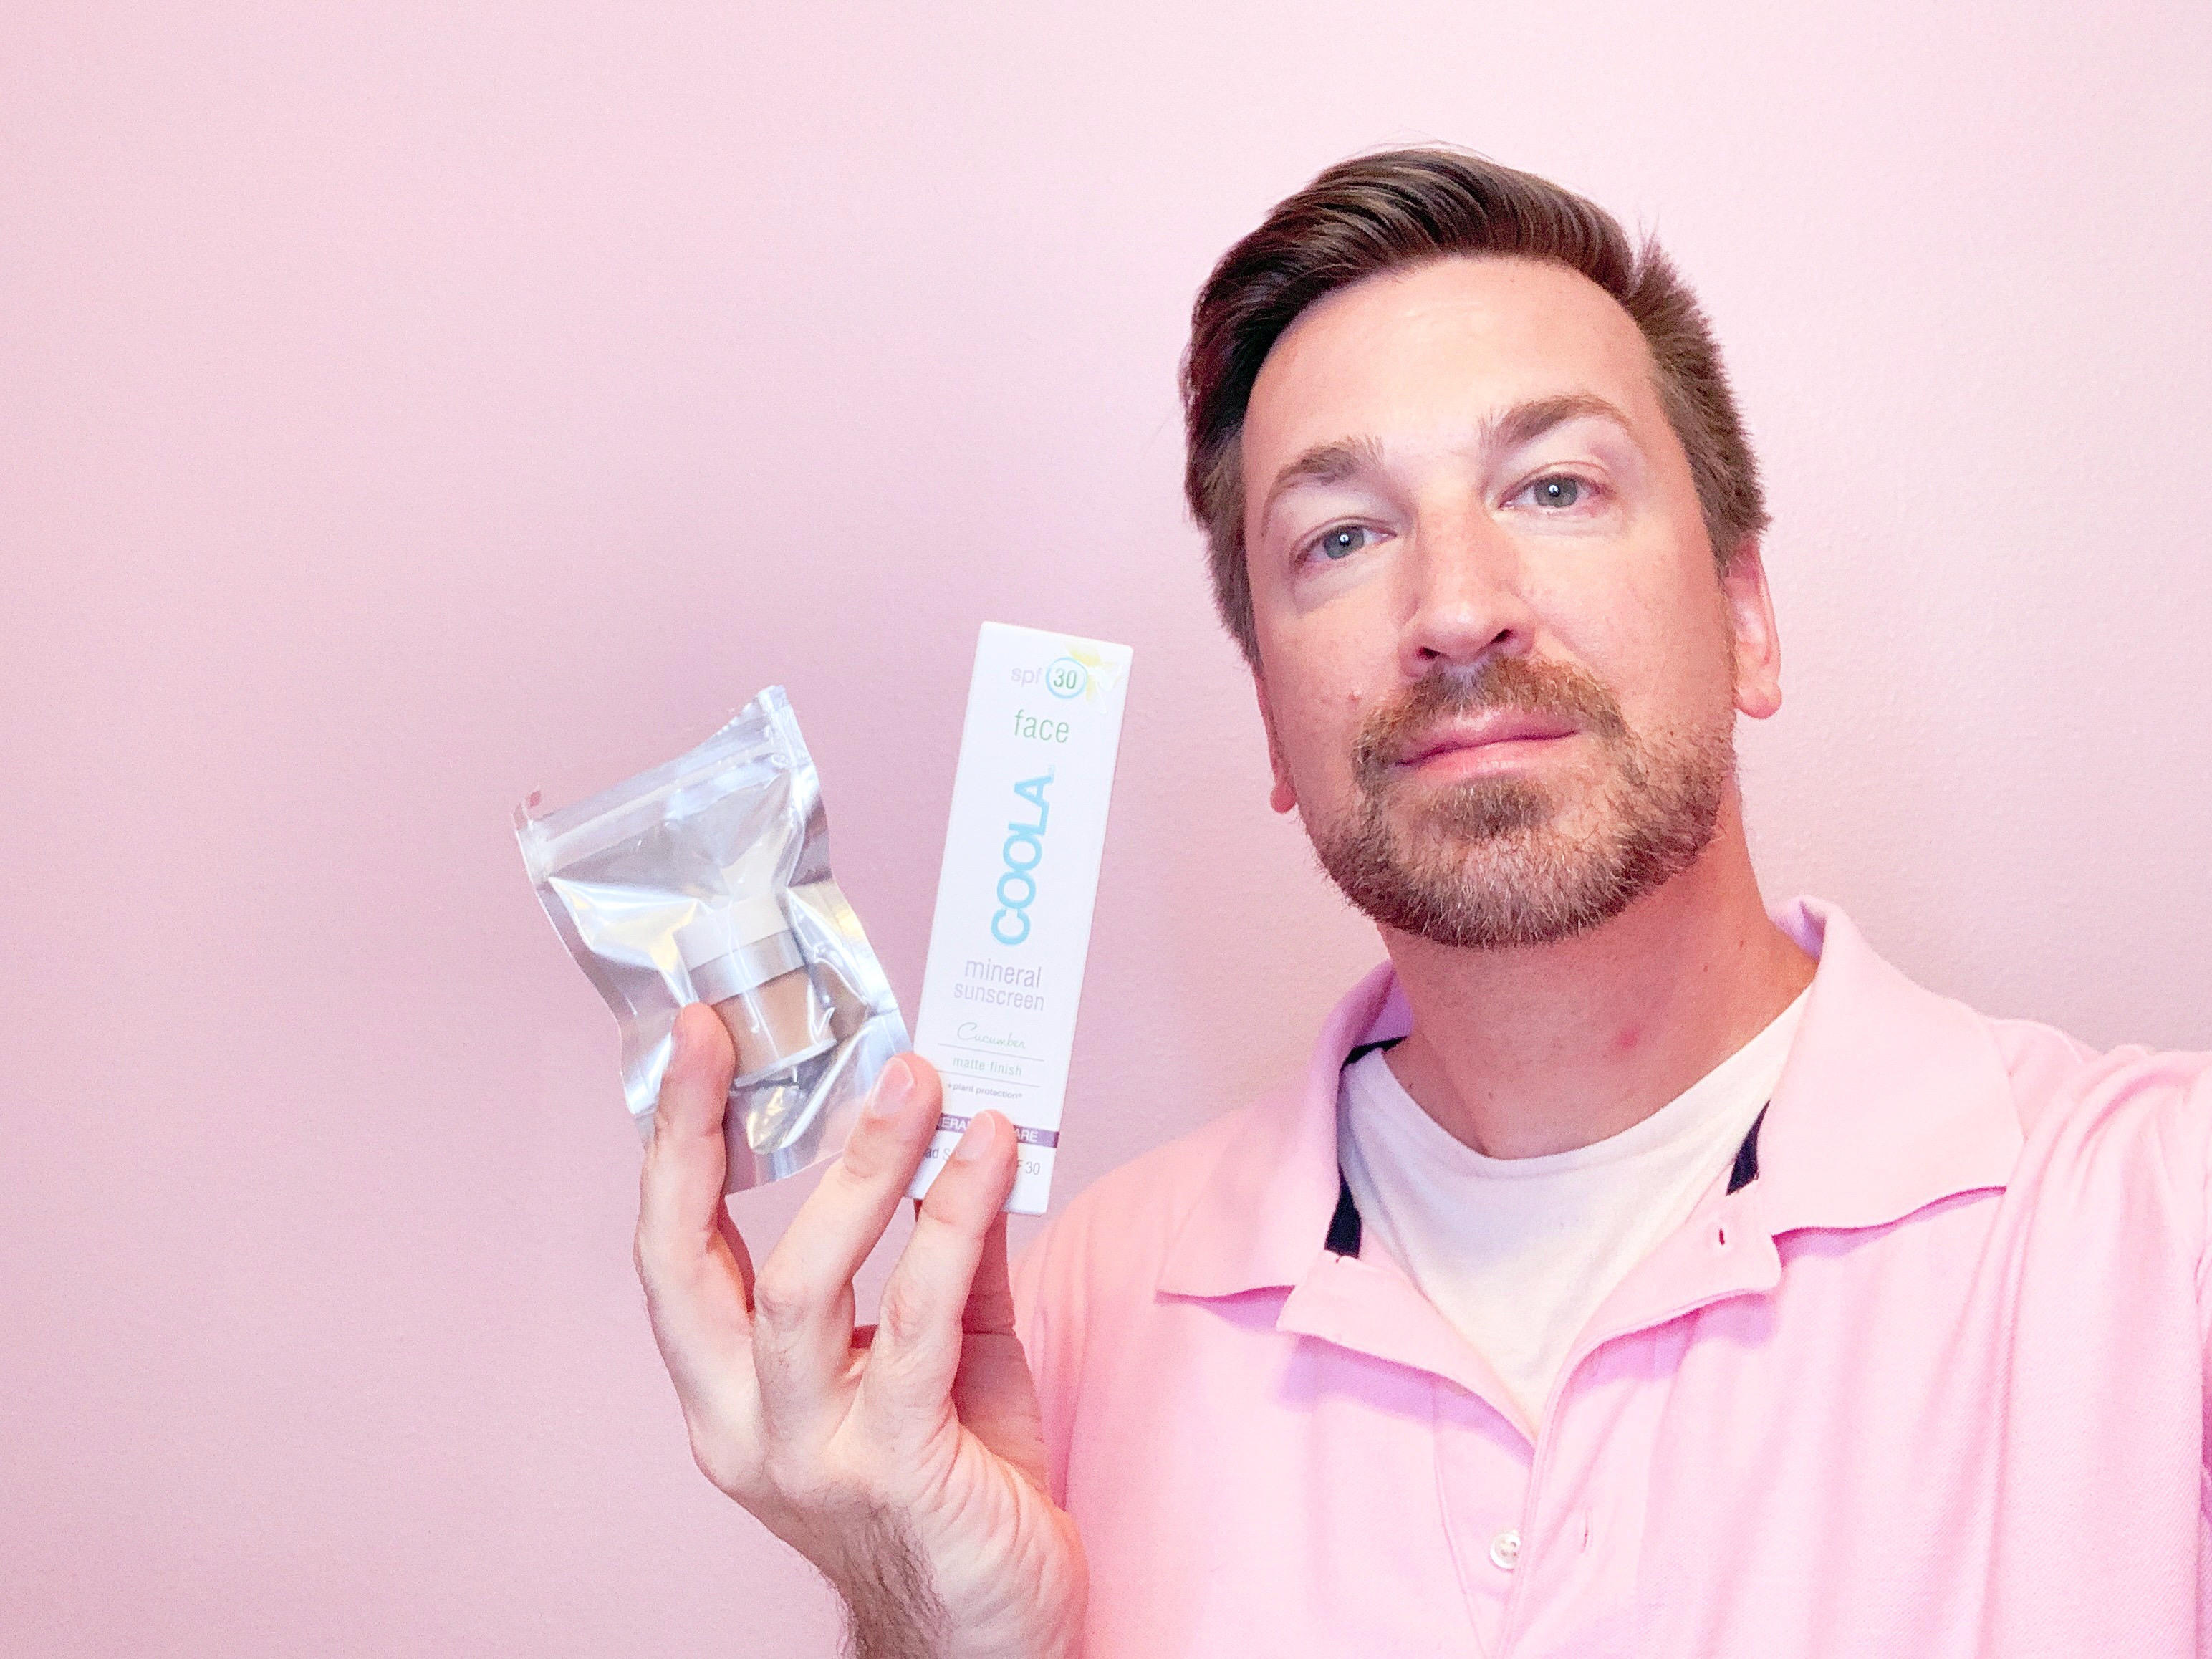 sunscreen, what is sunscreen, sunscreen spf, Vichy sunscreen, coola sunscreen, mineral sunscreen, supergoop sunscreen, supergoop review